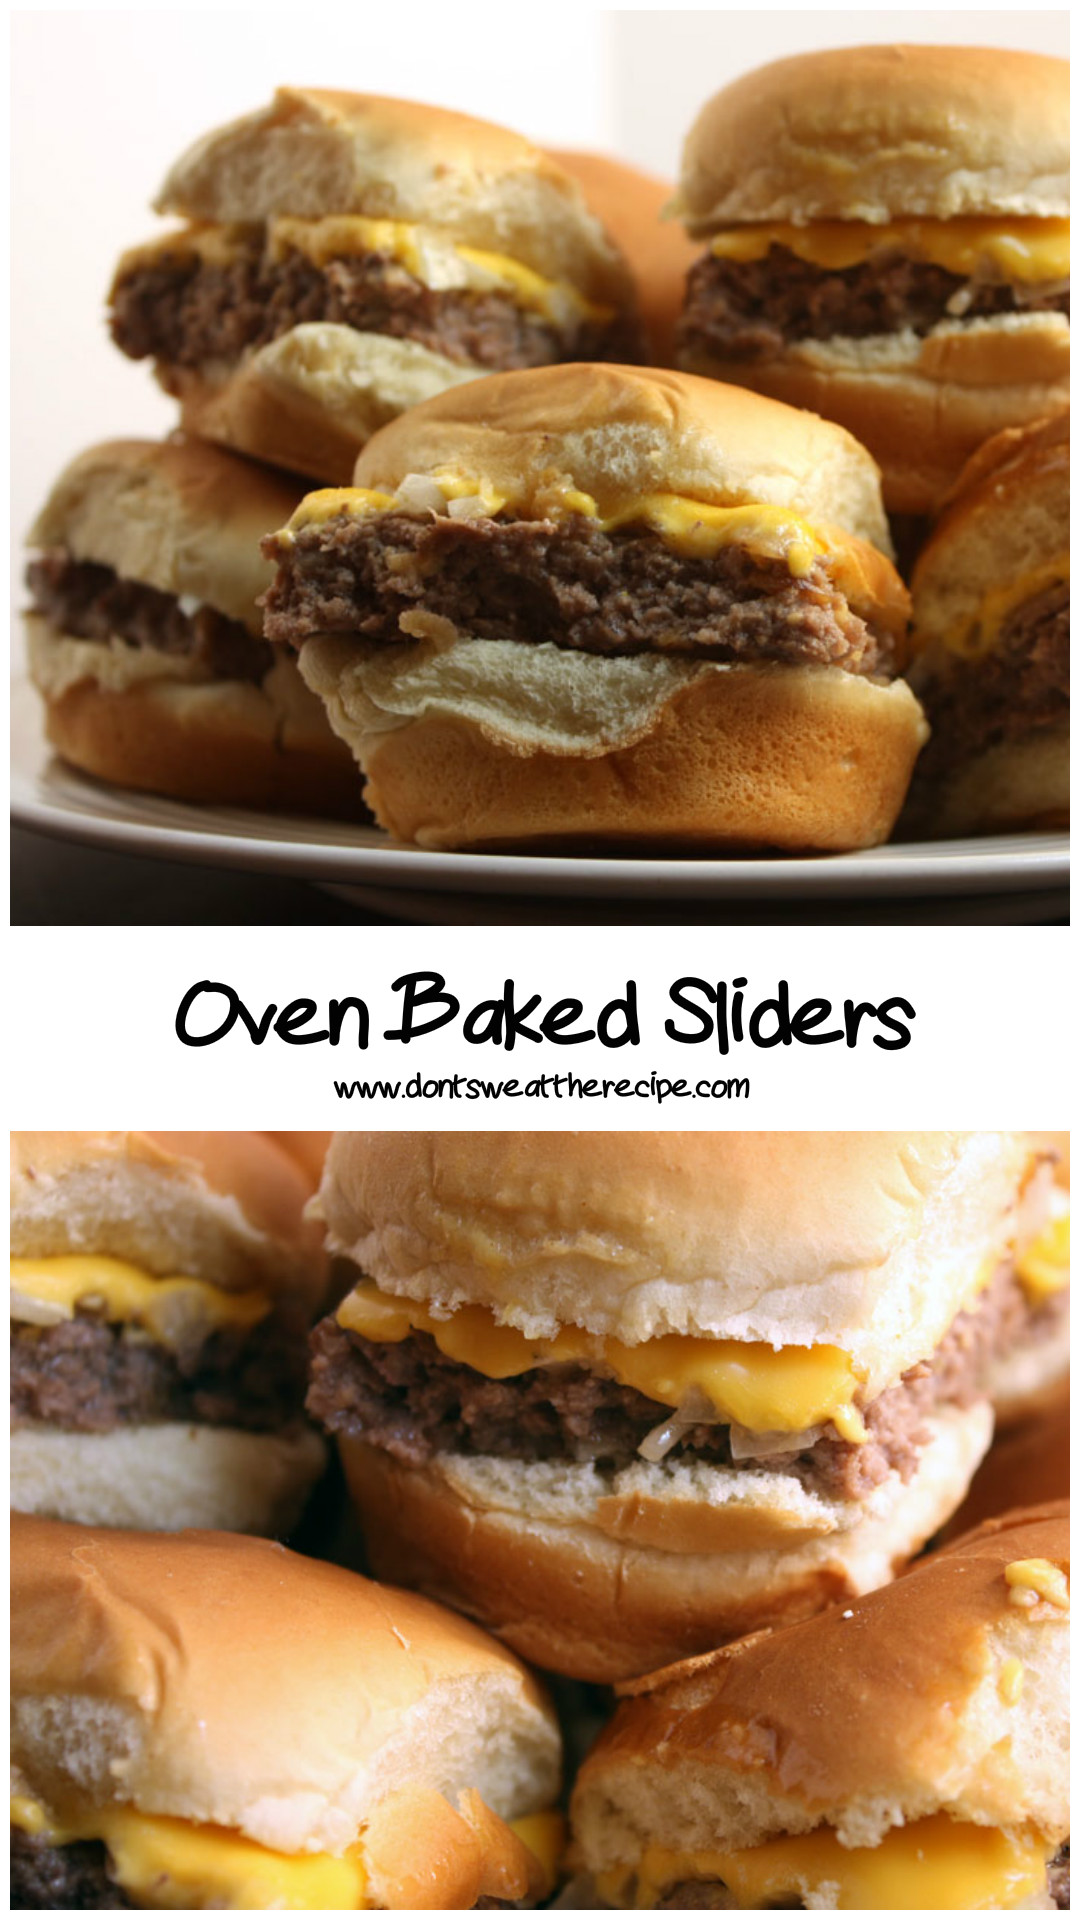 Oven Baked Sliders - Don't Sweat The Recipe